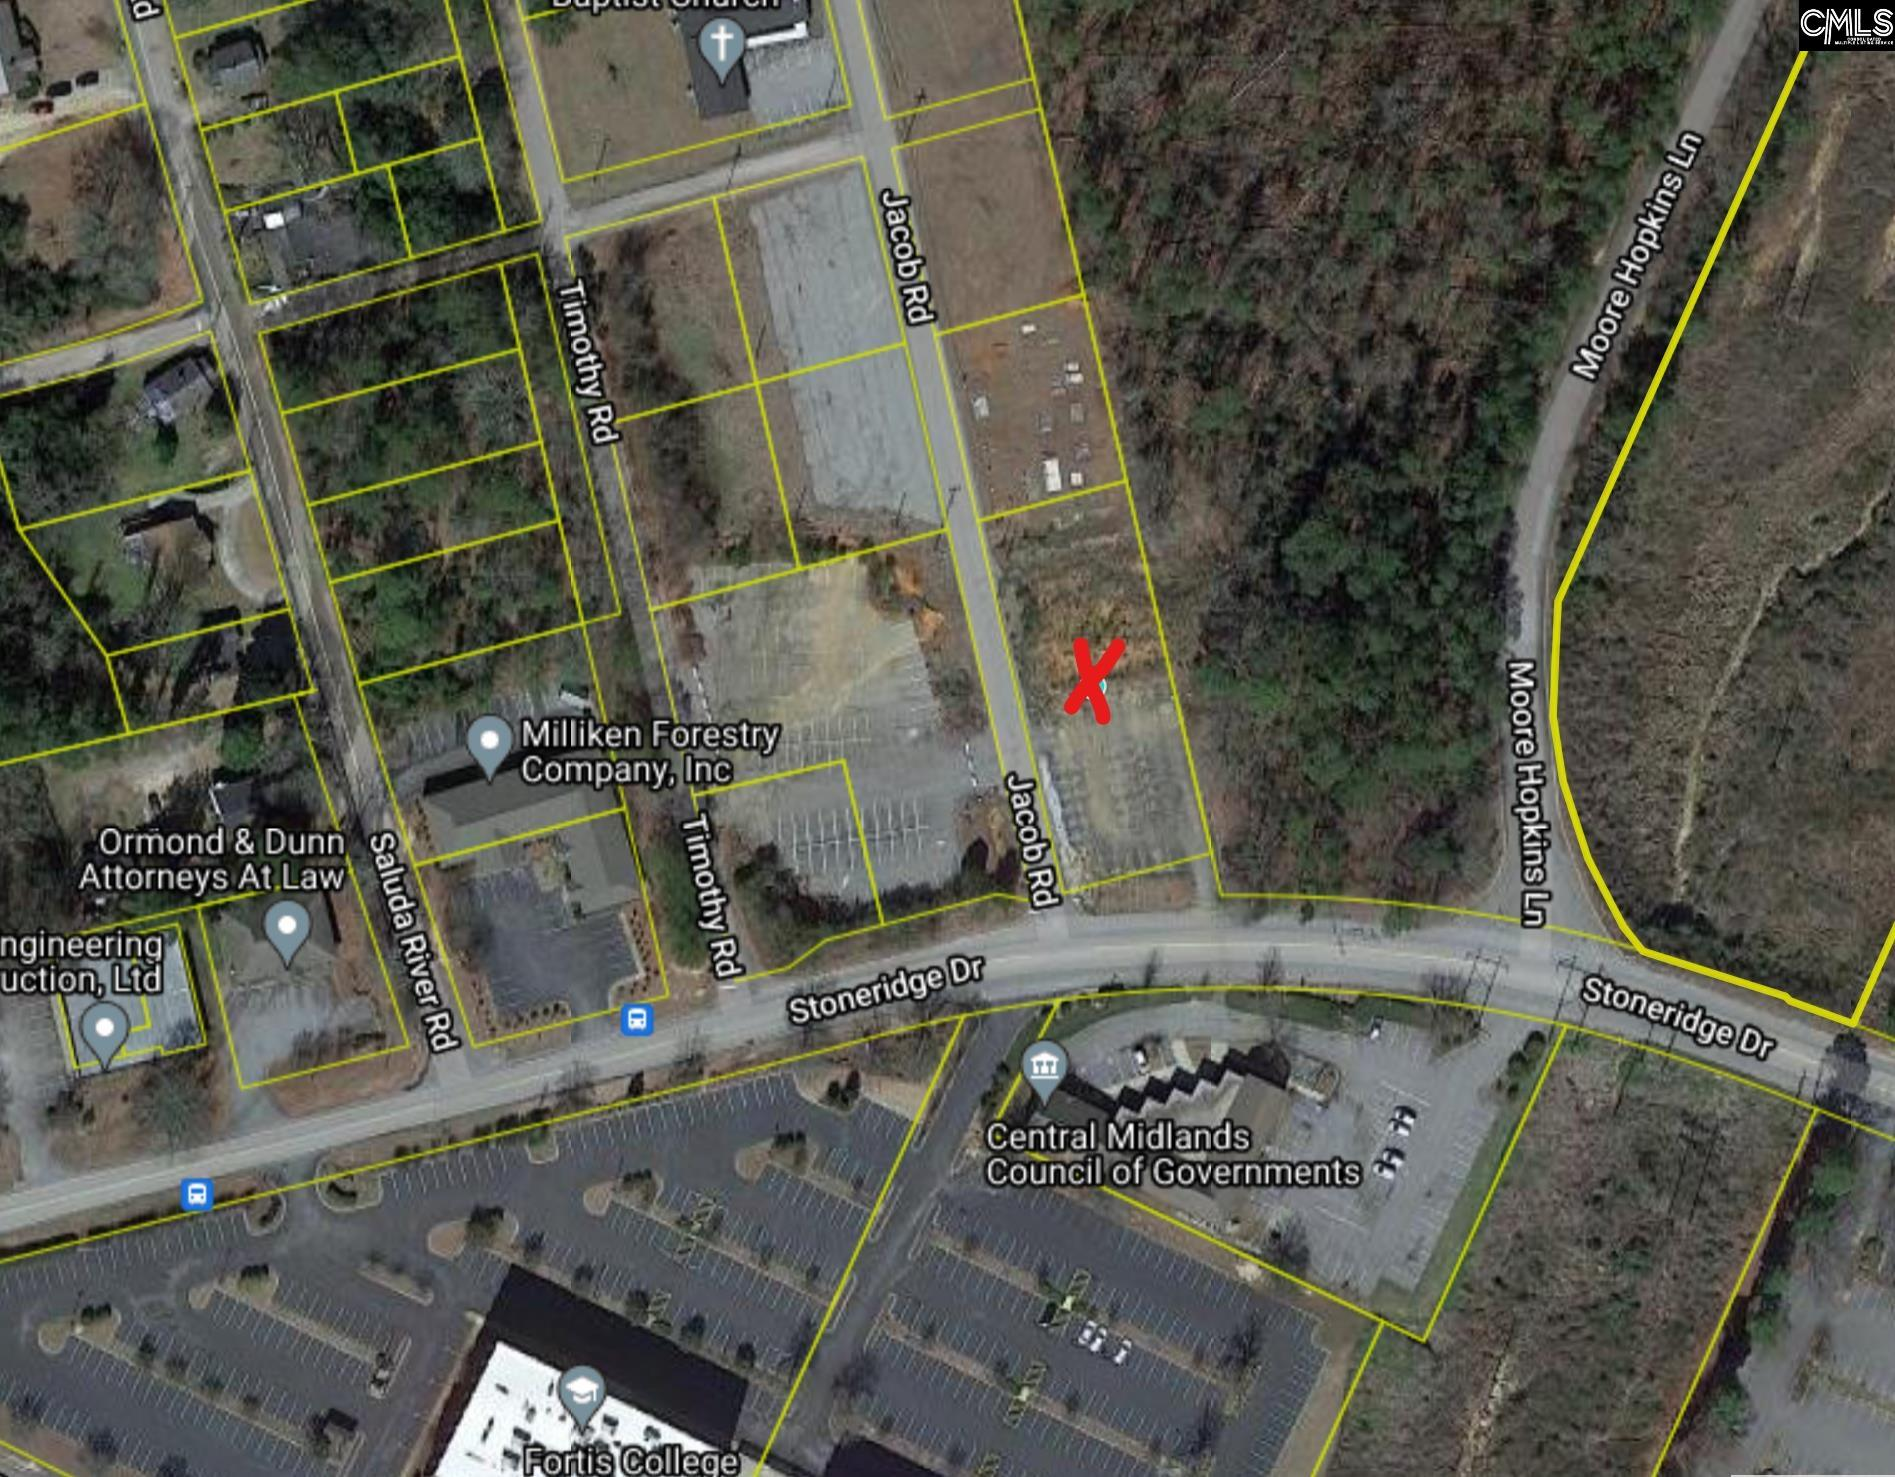 Great Commercial Site.  +/- .56 acres of prime commercial land in the heart of Columbia. +/- 100 feet of road frontage. Water and sewer available.